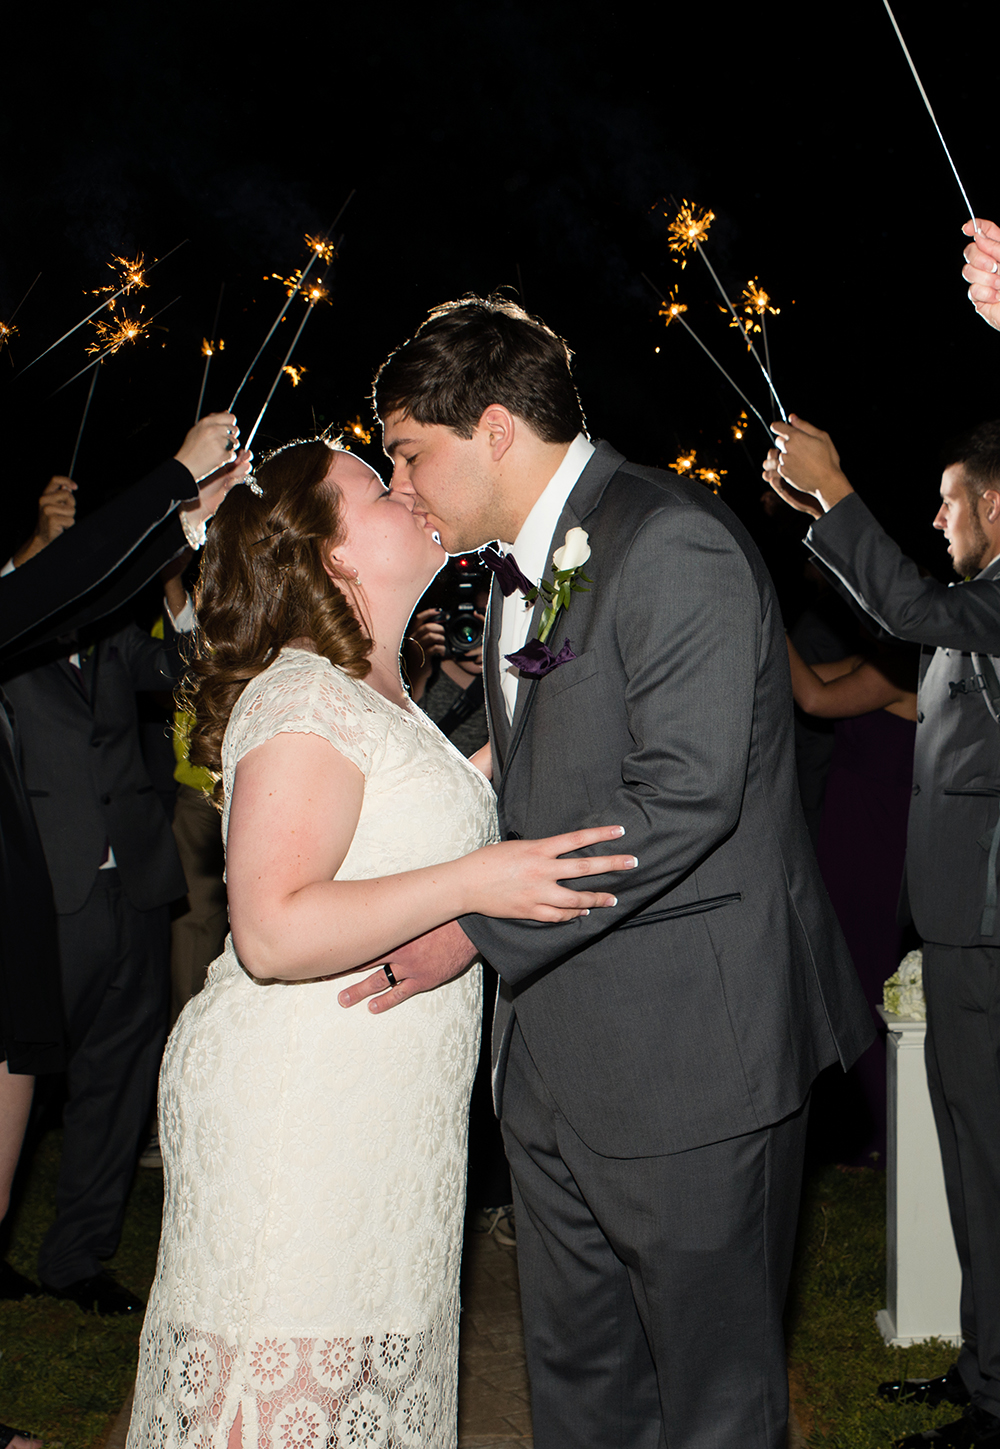 A couple kiss in front of sparklers at a Tuscany Garden wedding in Greensboro, NC